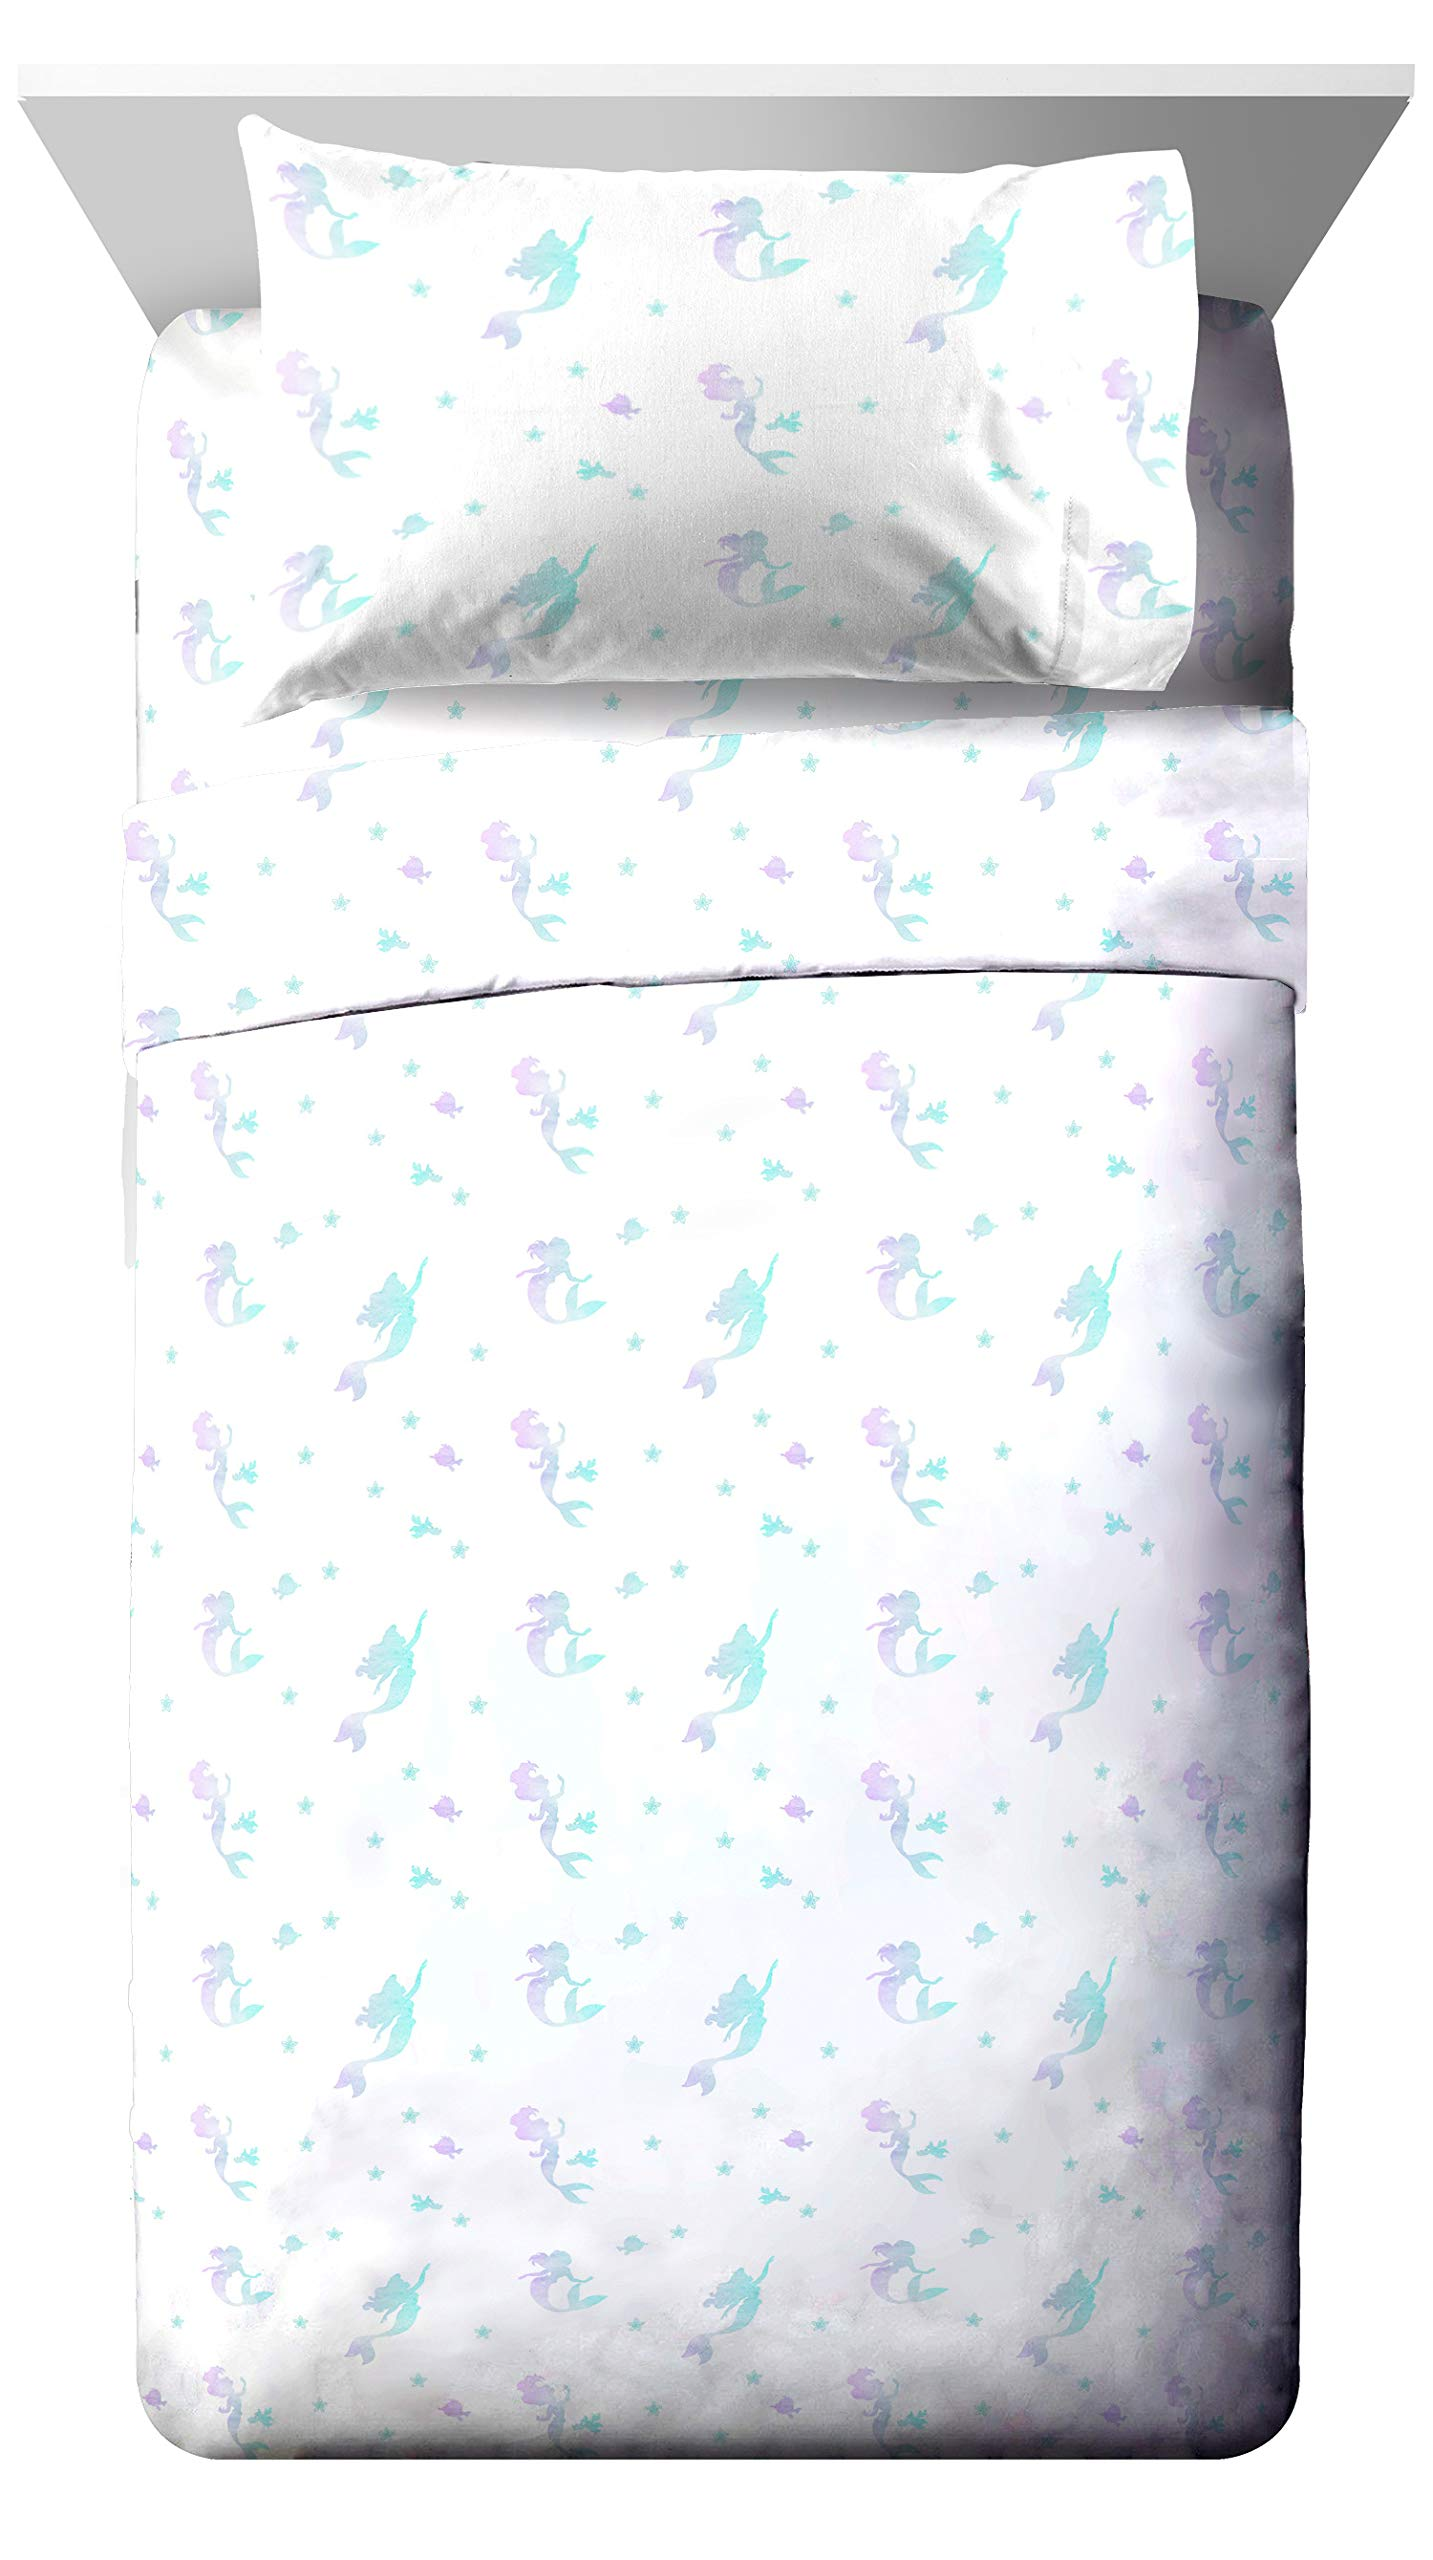 Jay Franco Disney Little Mermaid Make A Splash Full Sheet Set - 4 Piece Set Super Soft and Cozy Kid's Bedding Features Ariel - Fade Resistant Microfiber Sheets (Official Disney Product) by Jay Franco